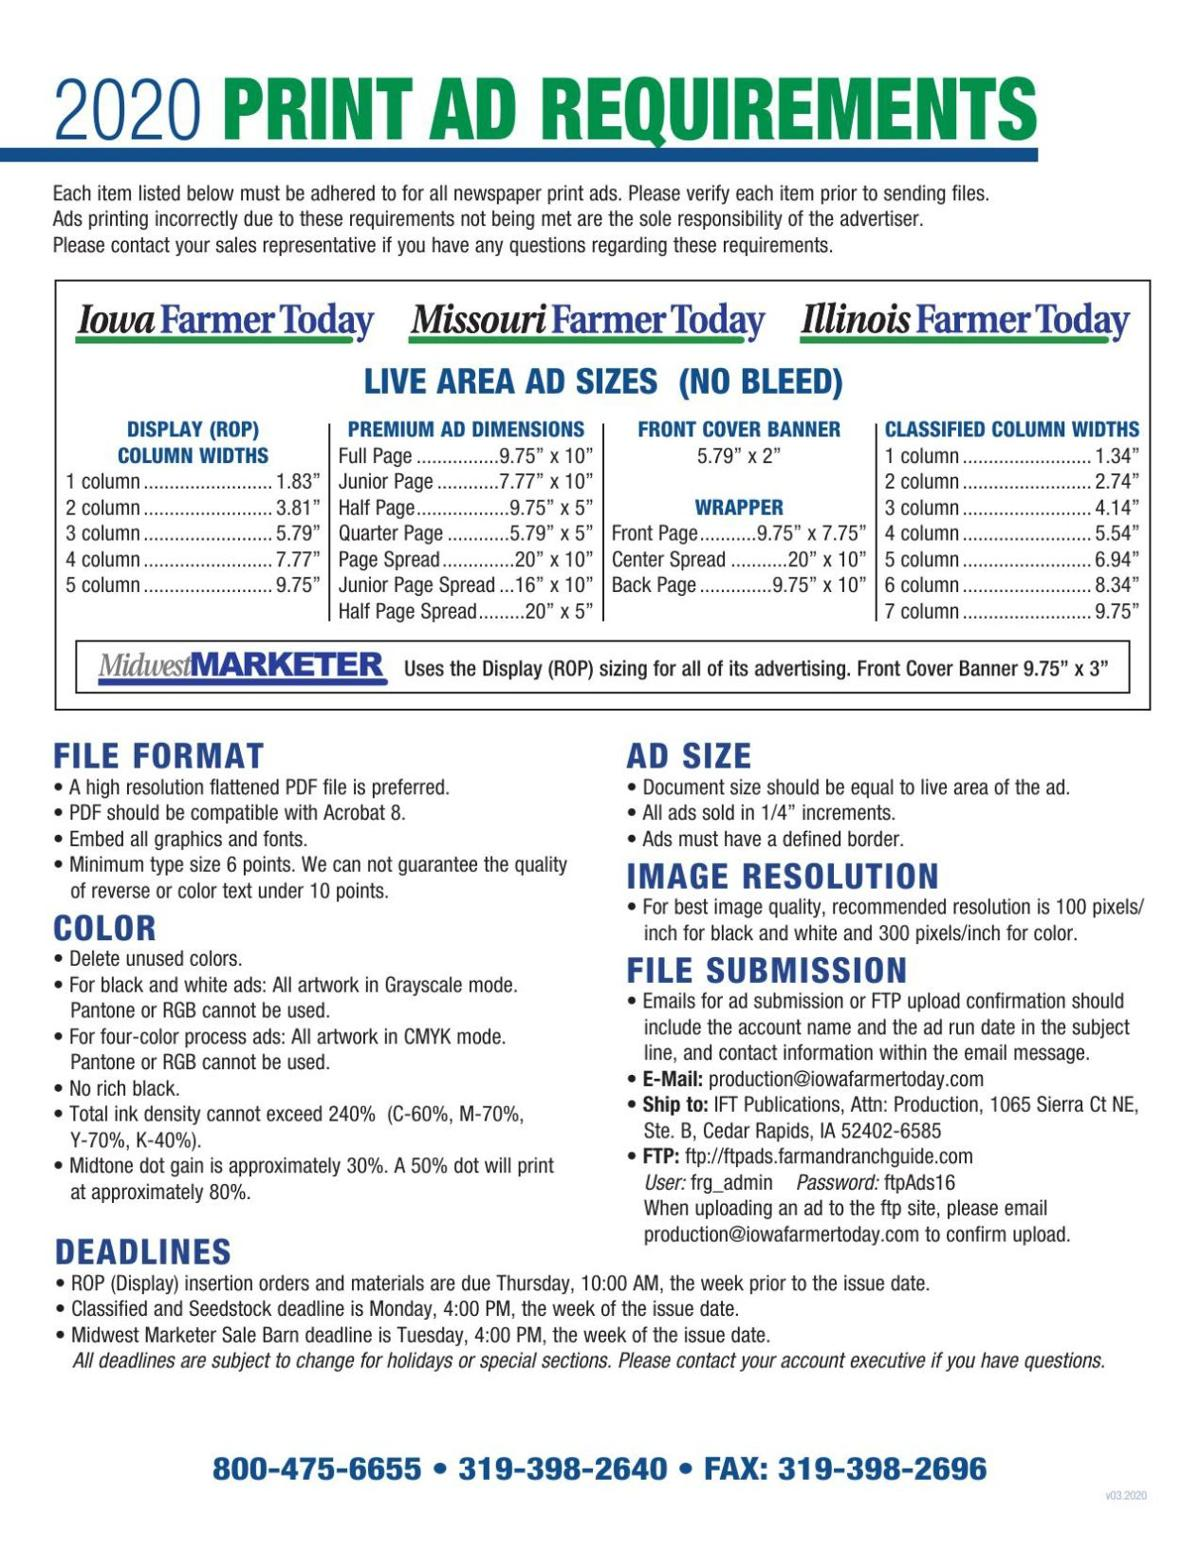 Print Ad Requirements